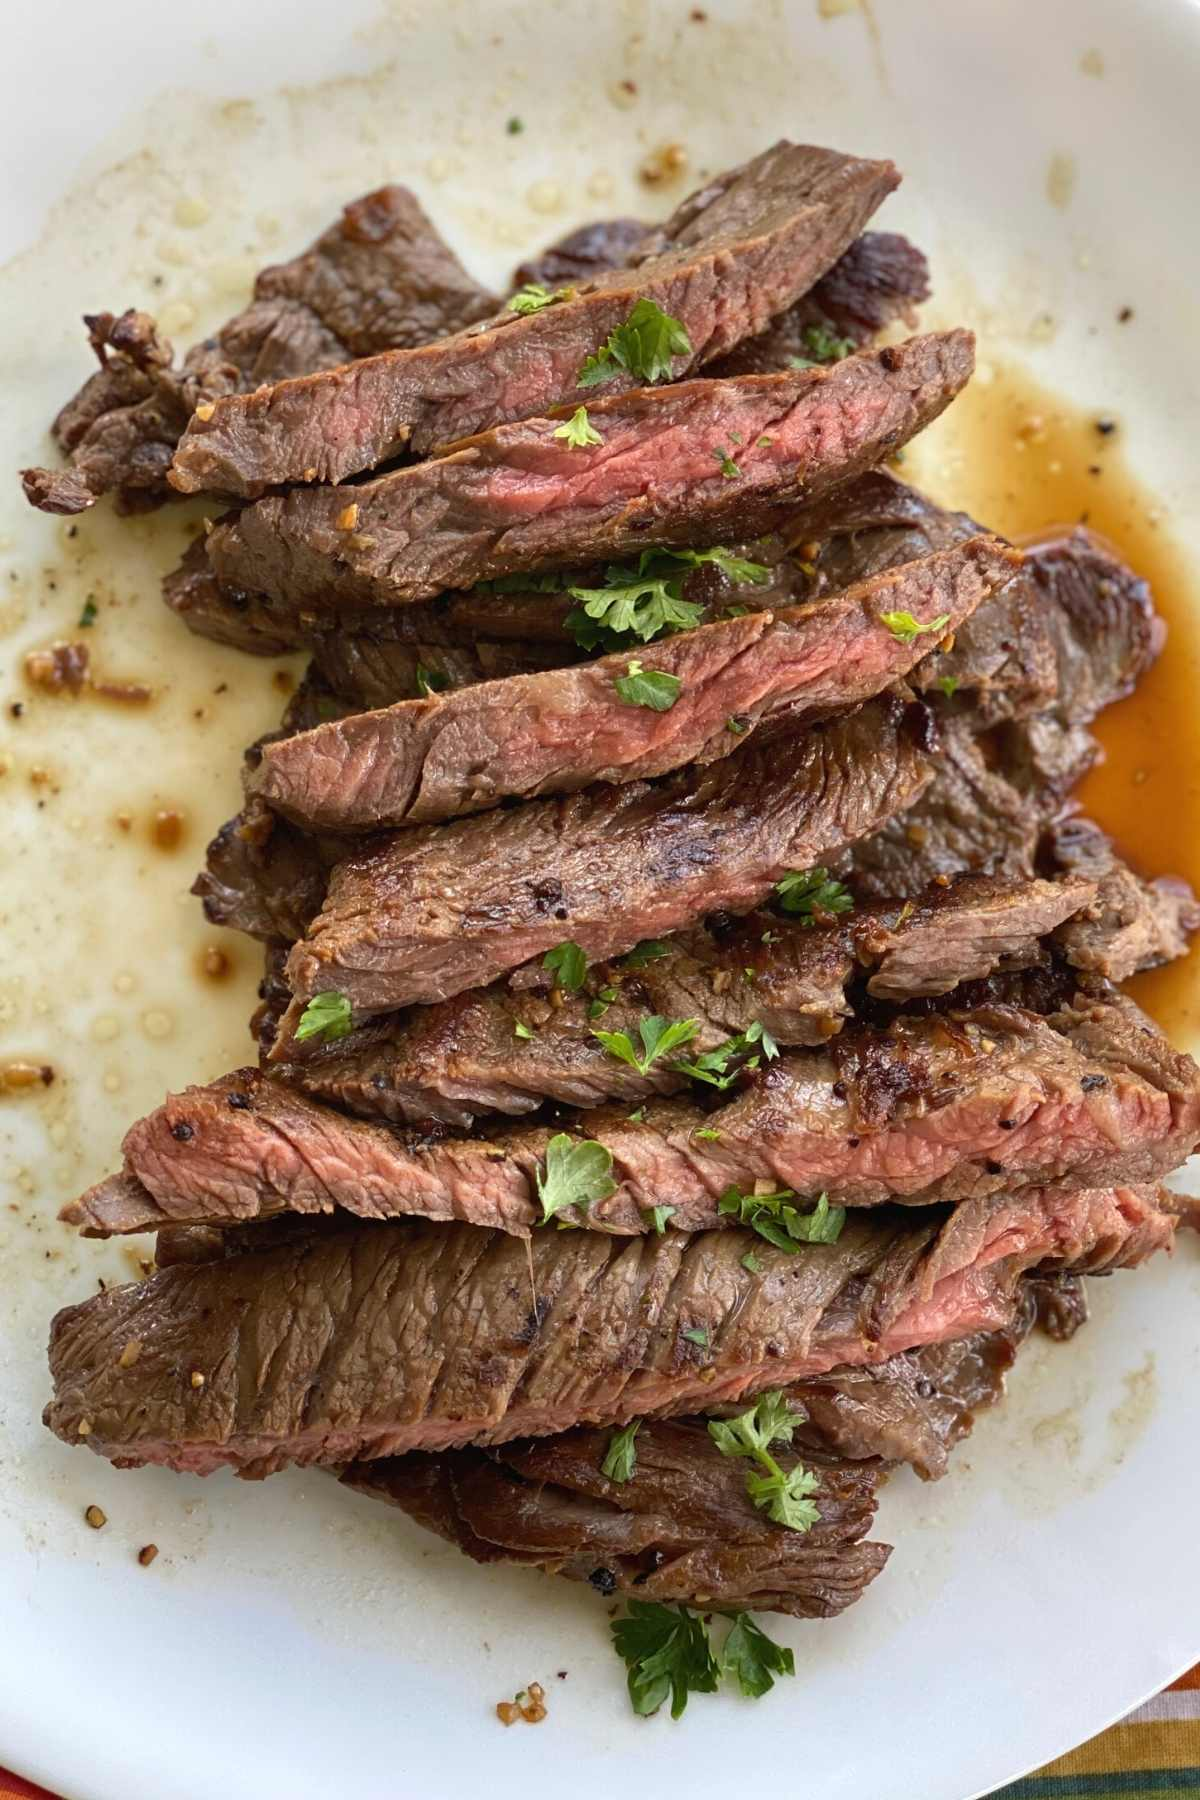 Slices of steak bavette piled on a plate and topped with parsley.